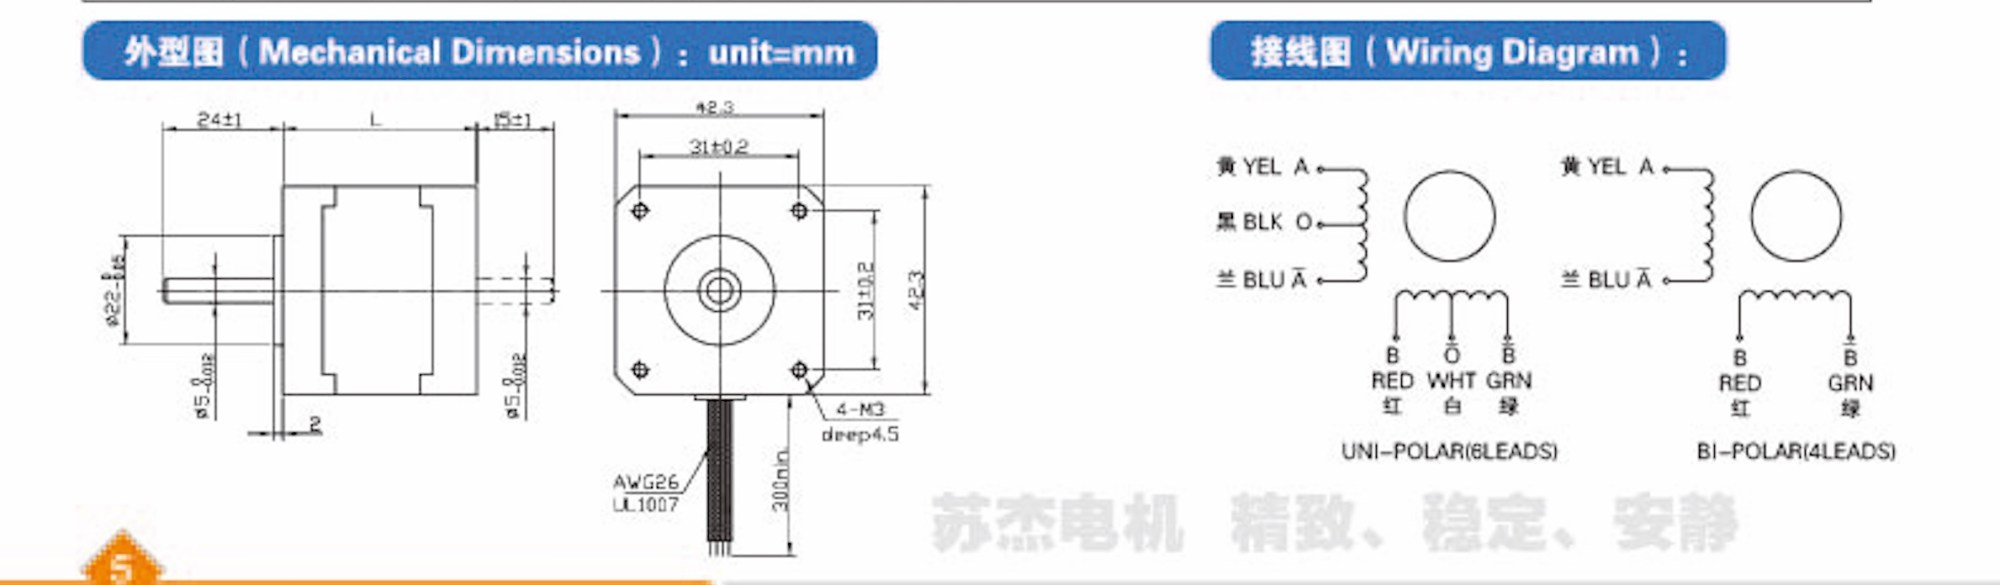 hight resolution of  note we can manufacture products according to customer s requirements